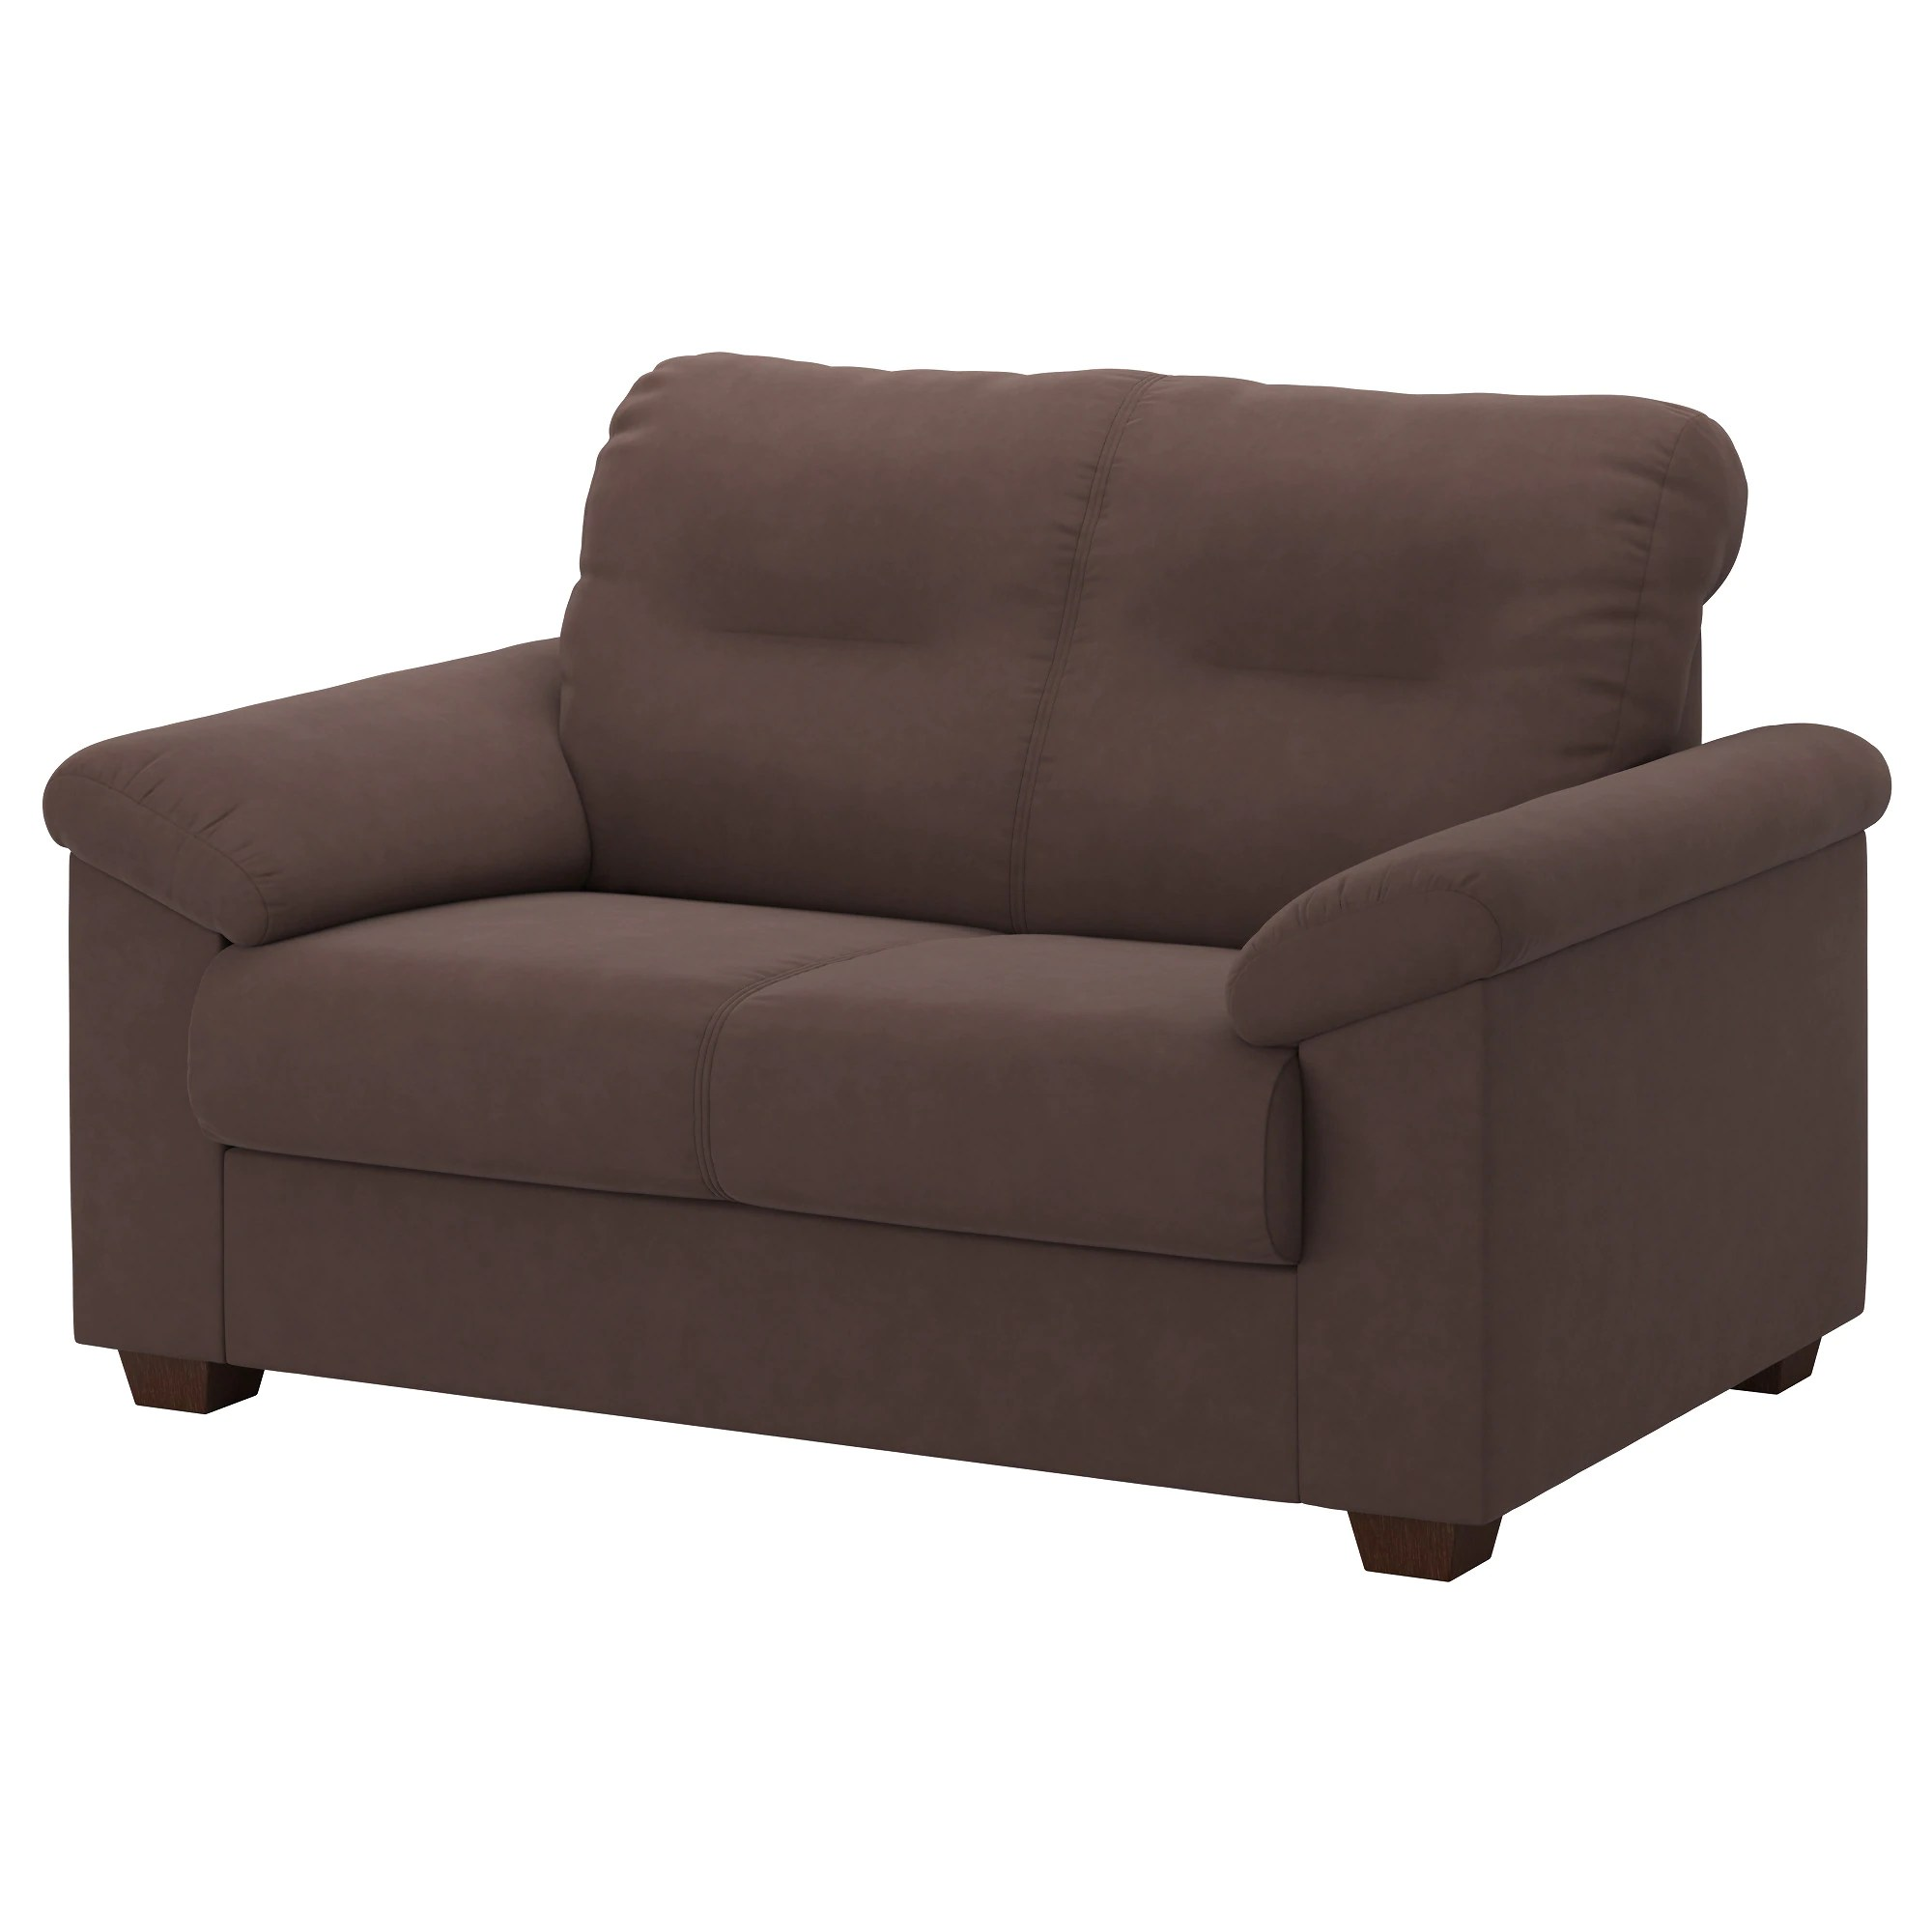 Ikea Sofa österreich Two Seat Sofa Knislinge Samsta Dark Brown